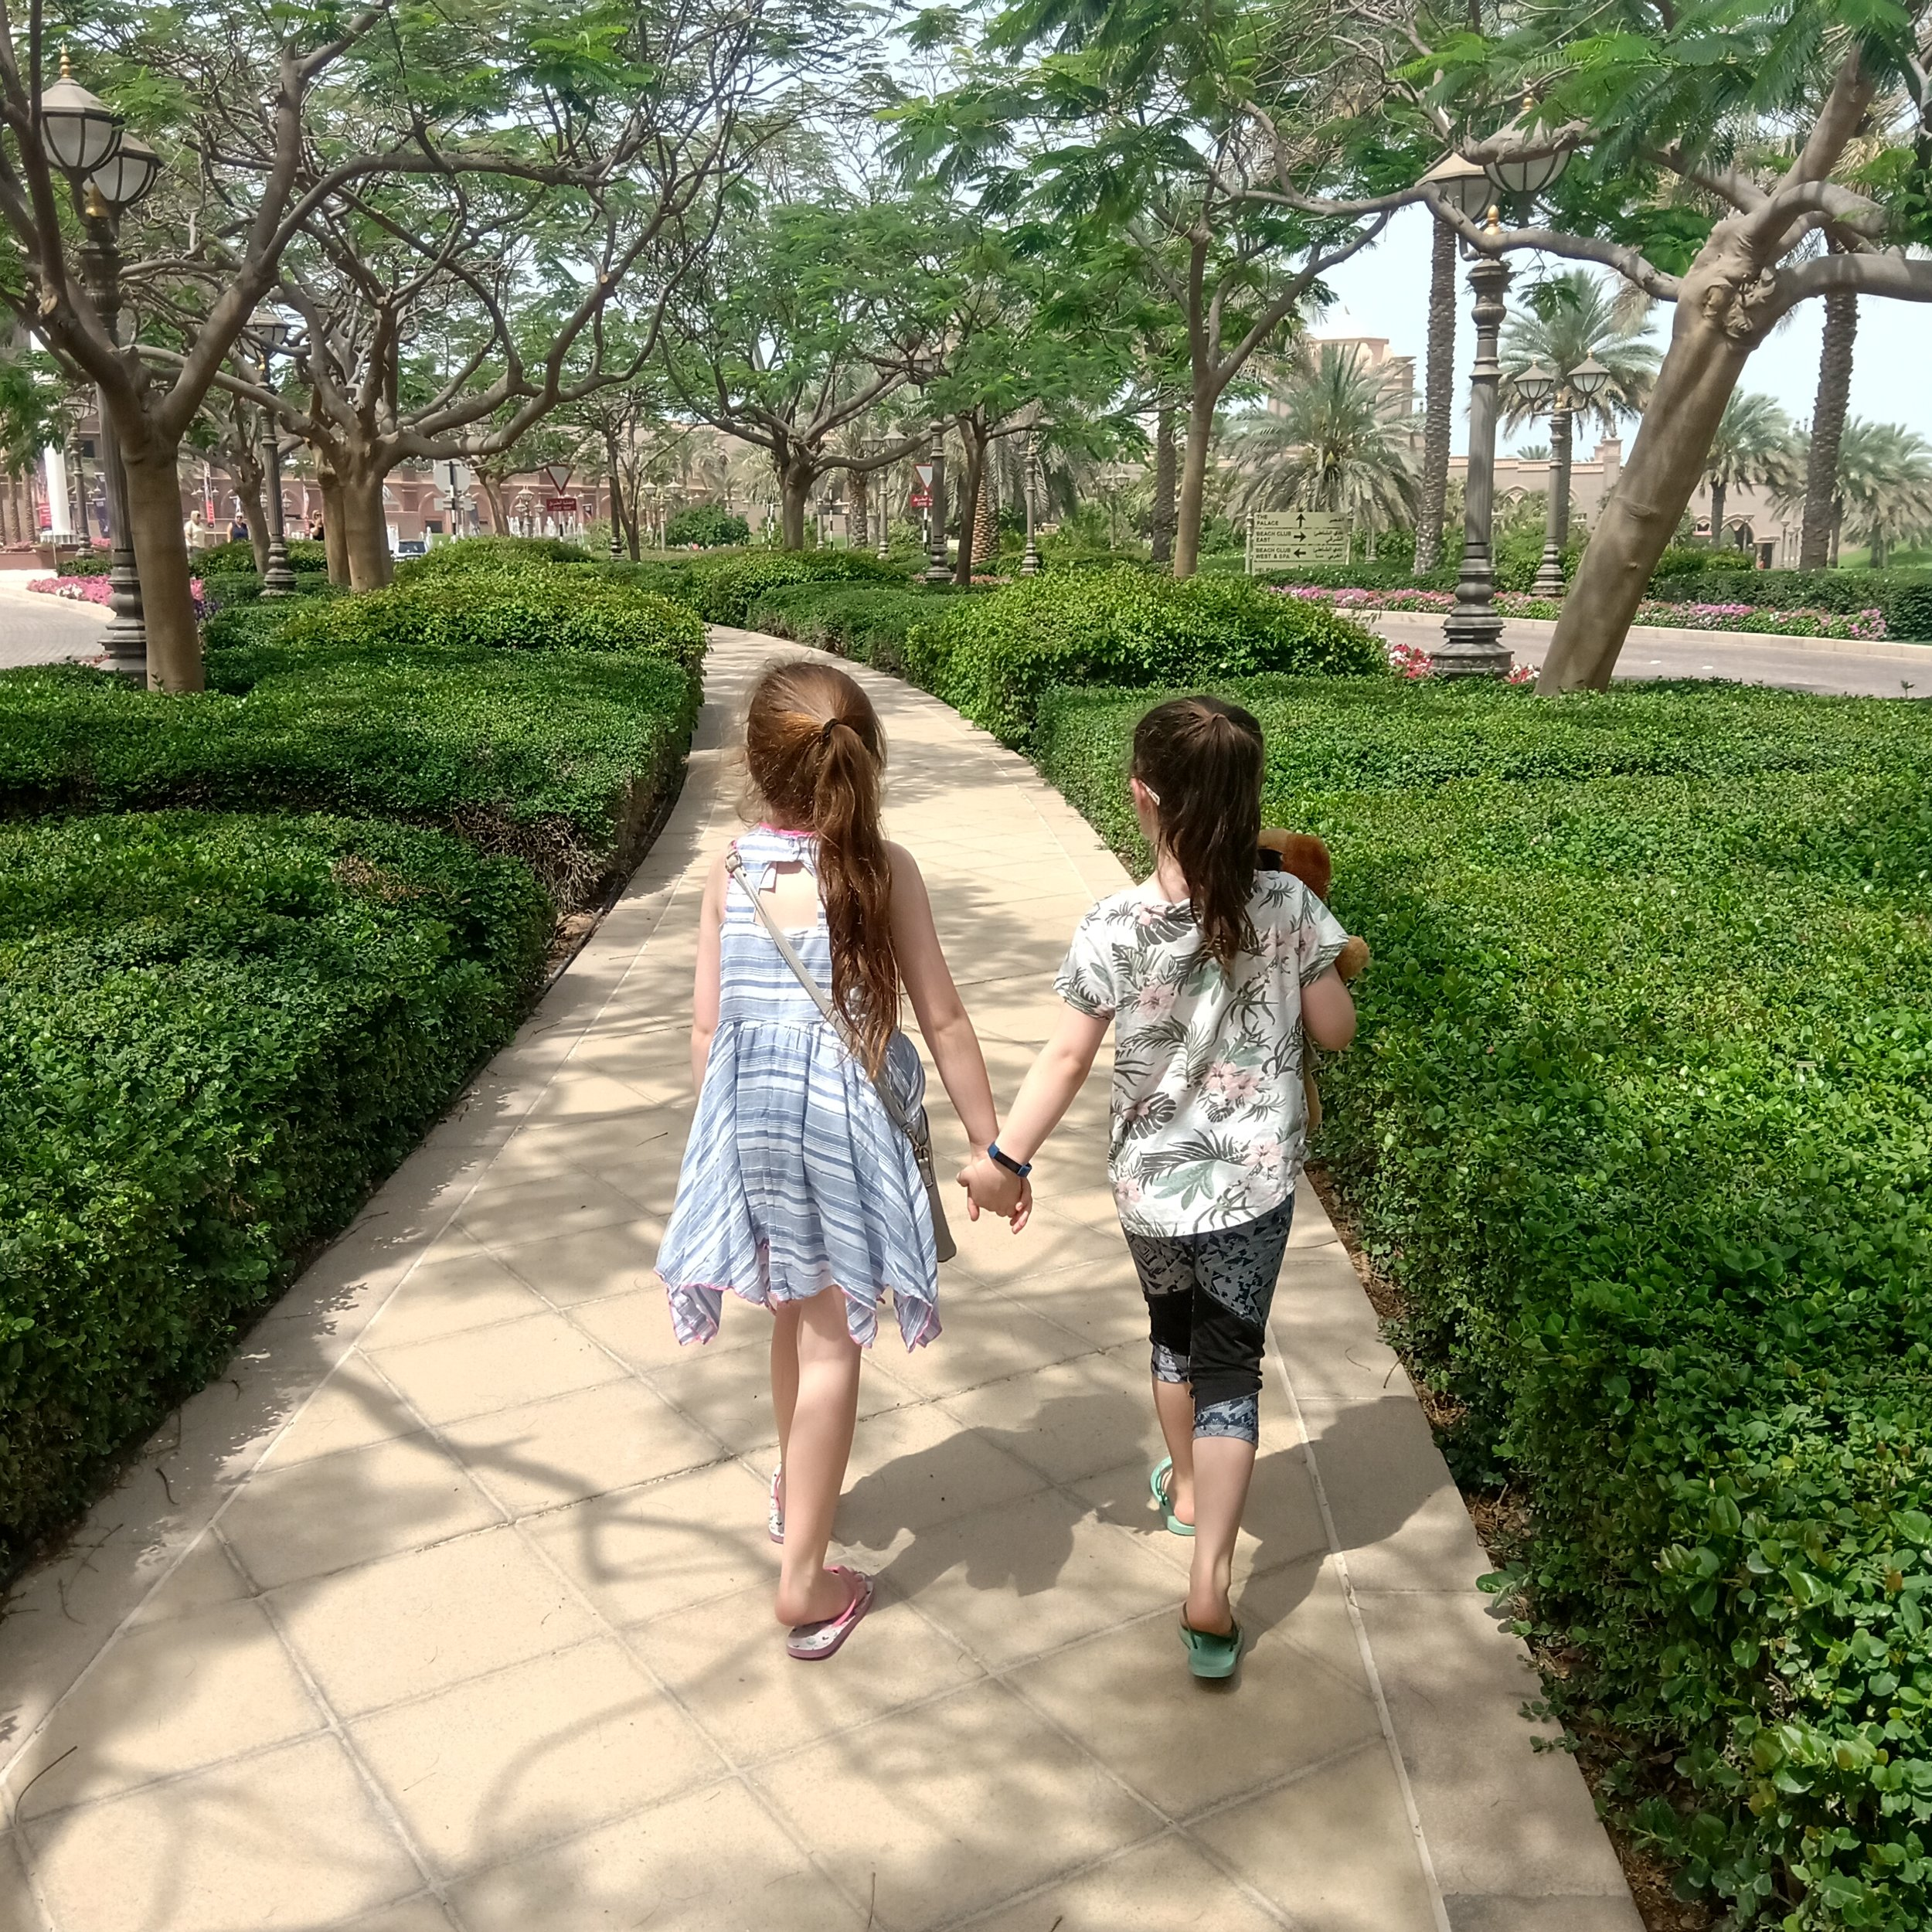 Emily (right) and her besty, Alayna, strolling through the Emirates Palace grounds